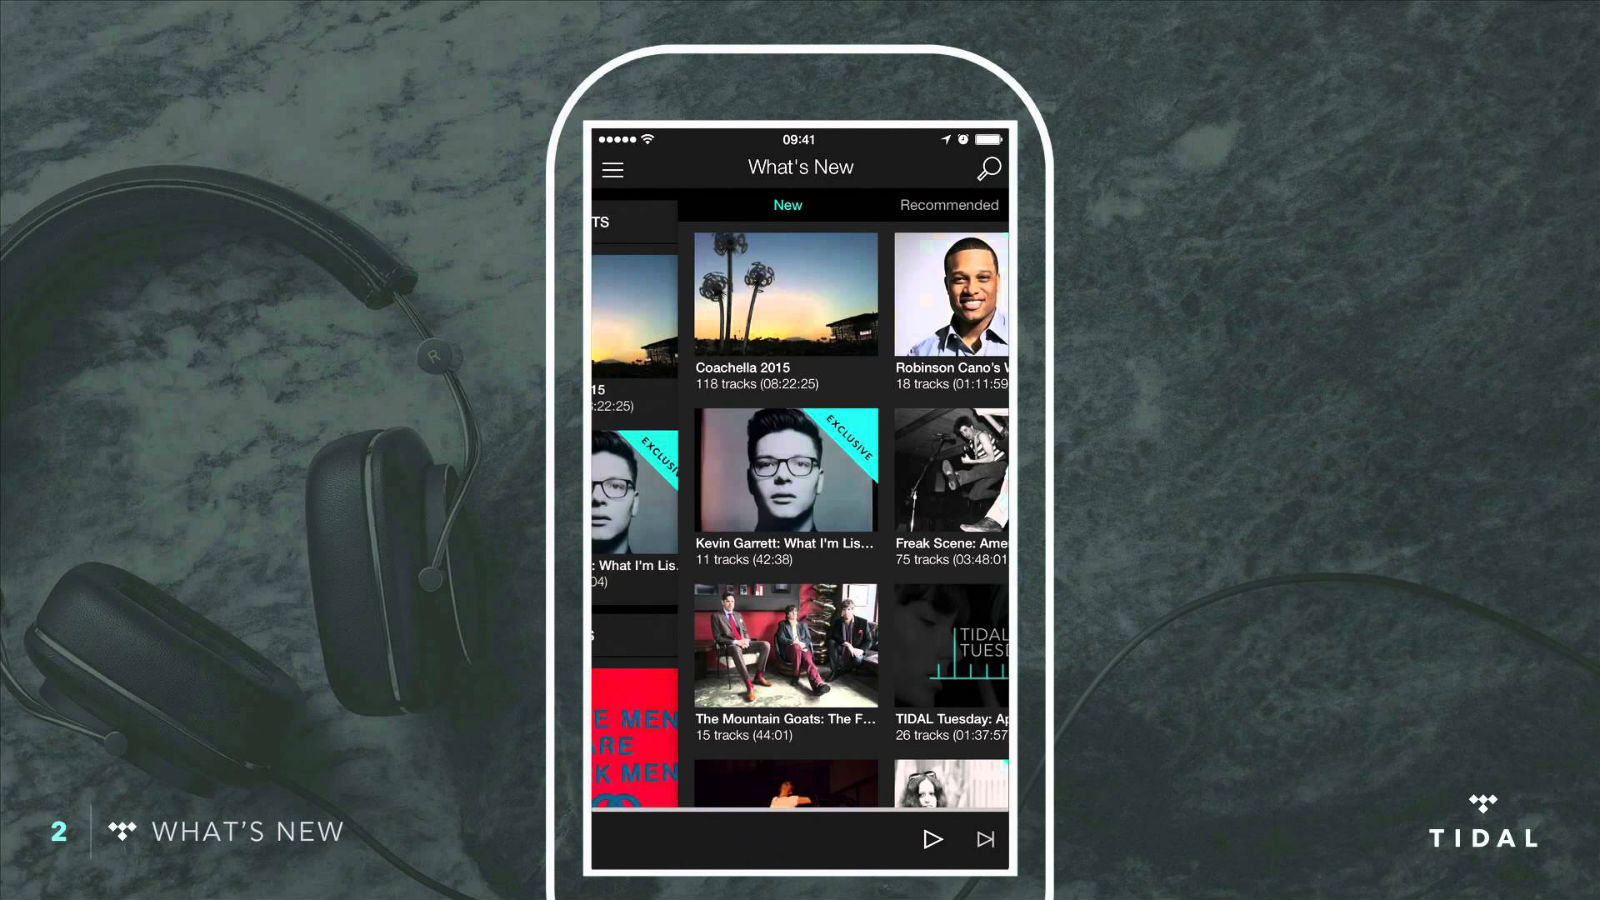 Tidal may only have enough cash left to last six months